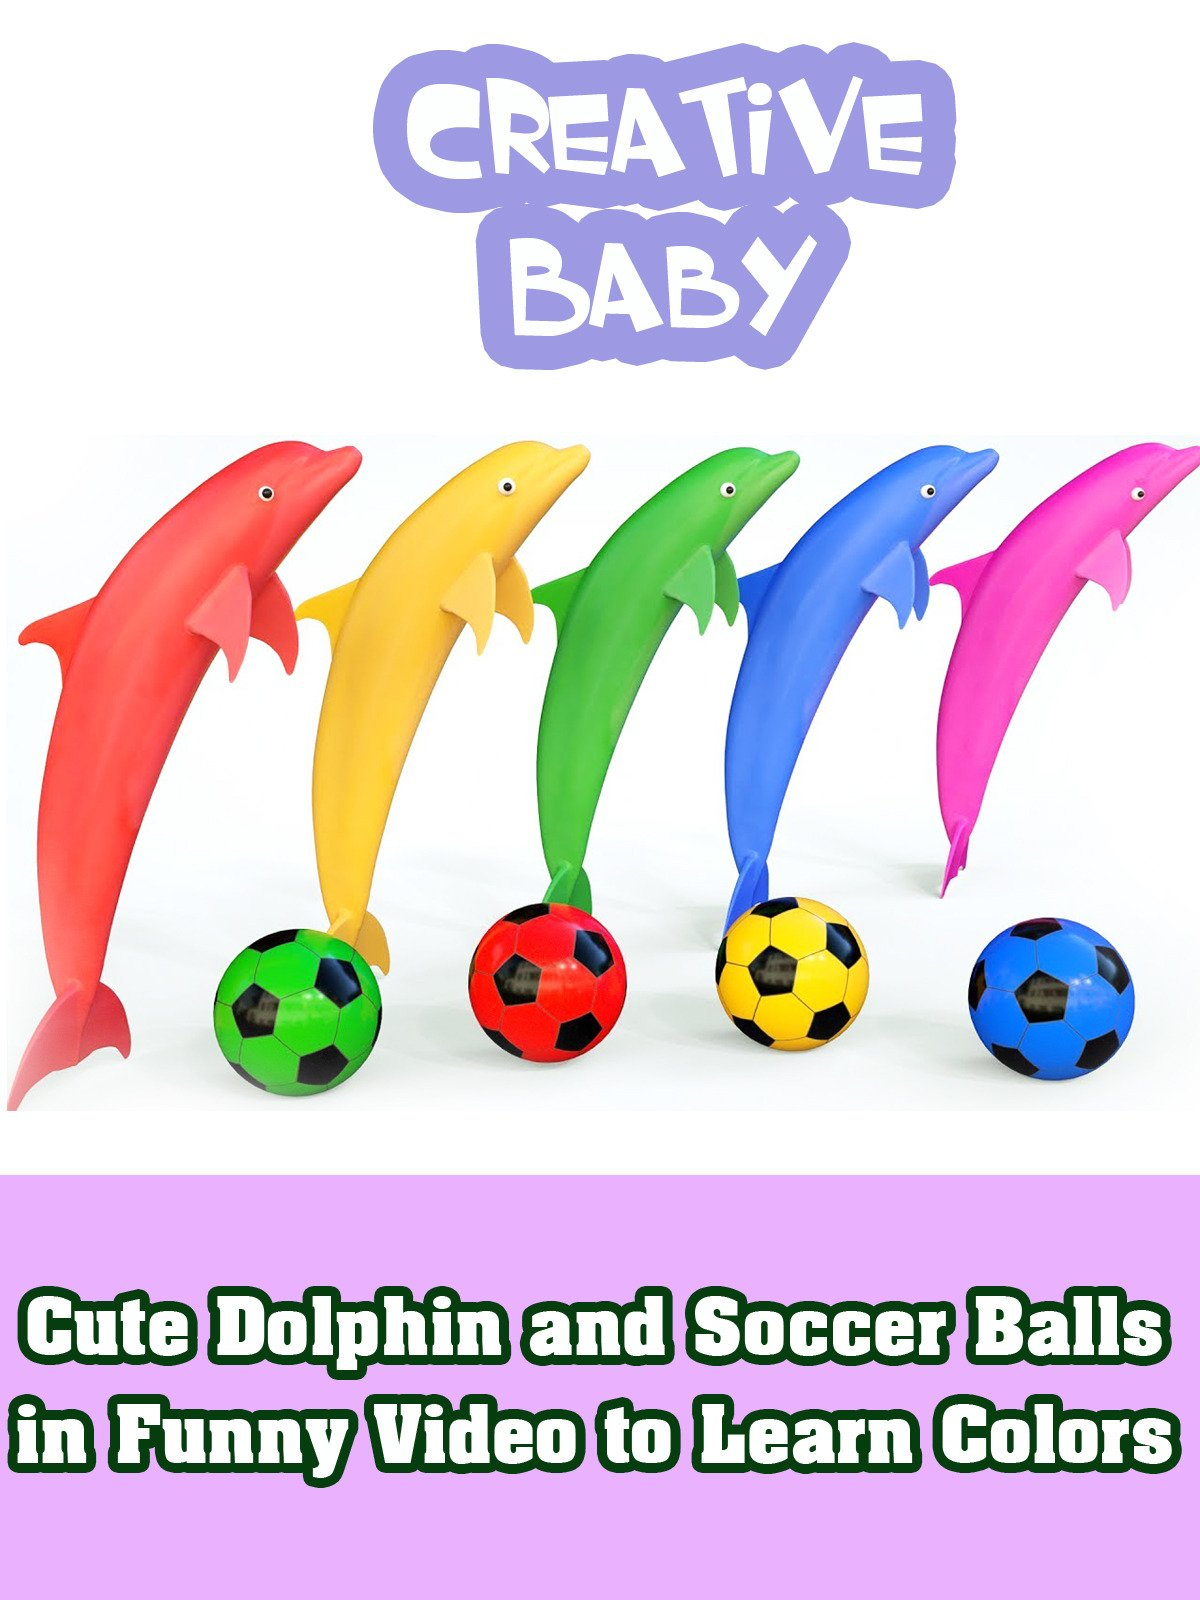 Cute Dolphin and Soccer Balls in Funny Video to Learn Colors